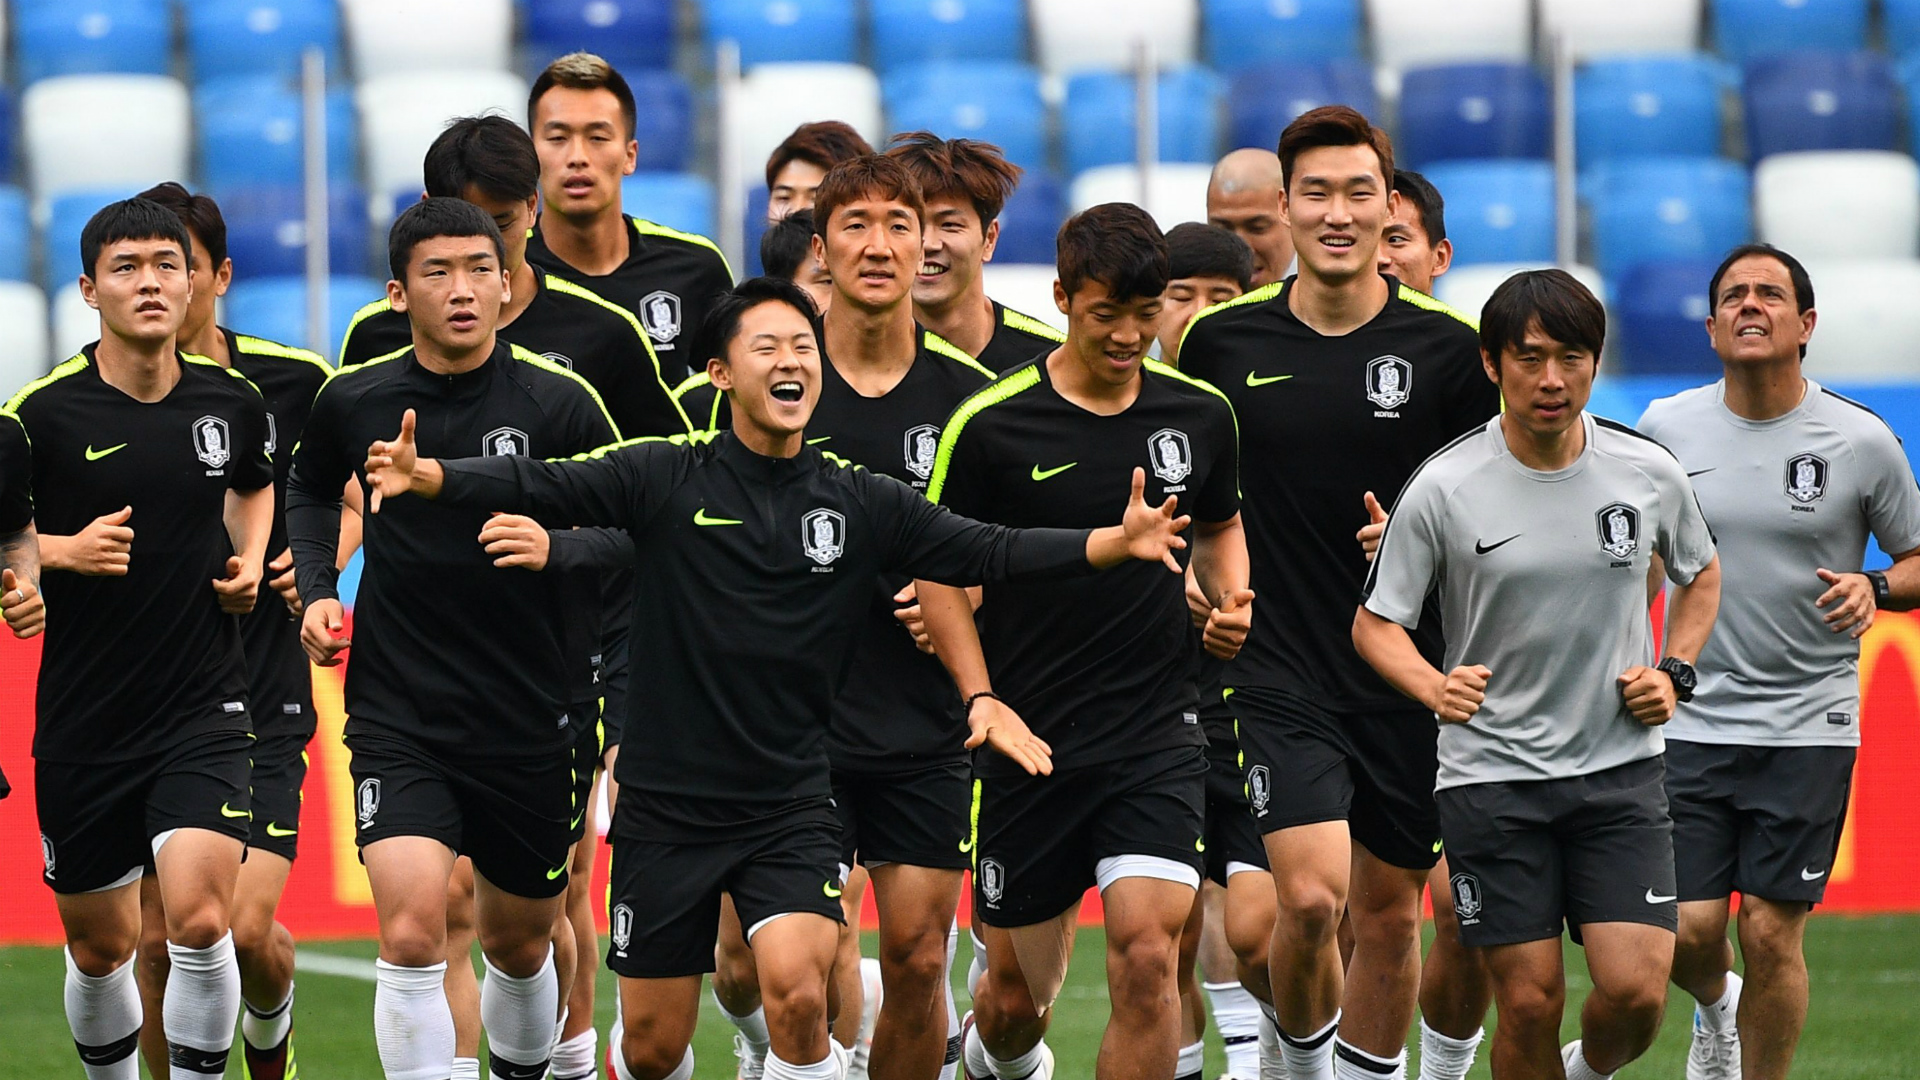 South Korea counters Sweden's 'spying' tactics by swapping shirts in training